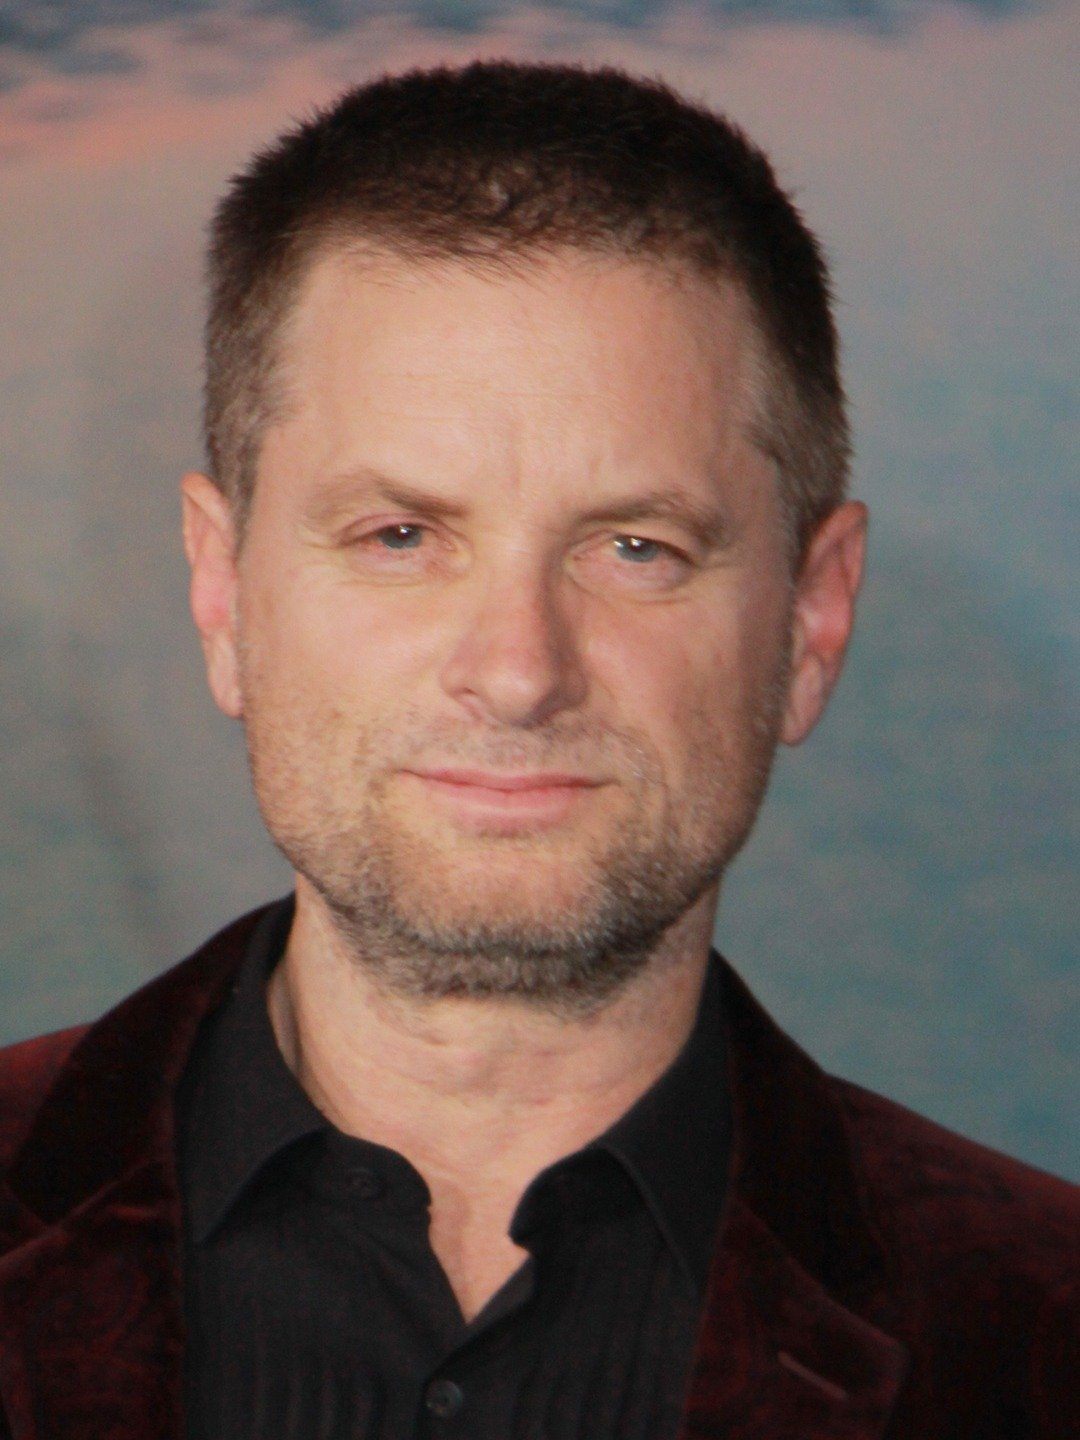 How tall is Shea Whigham?